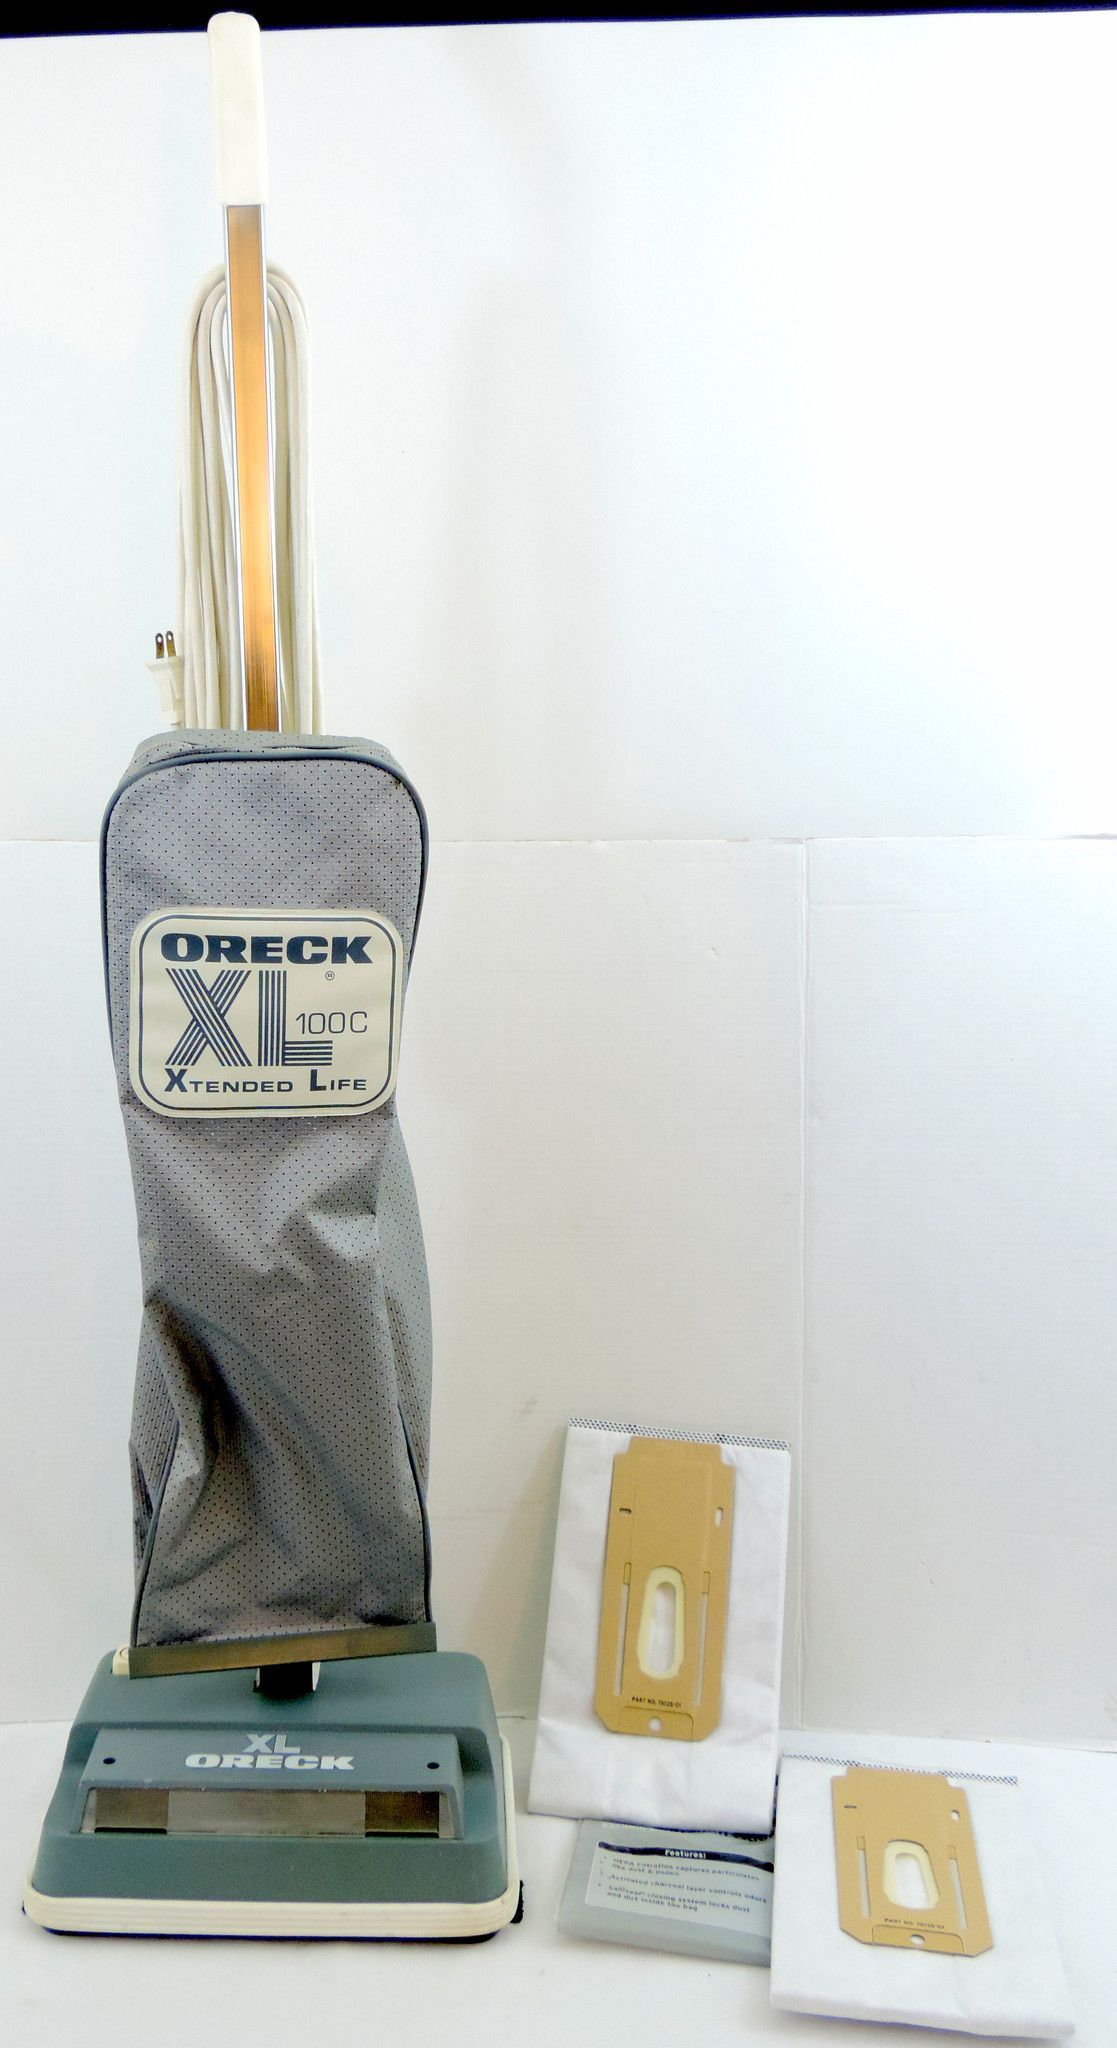 Oreck XL 100C Xtended Life Upright Vacuum Cleaner w/ Two